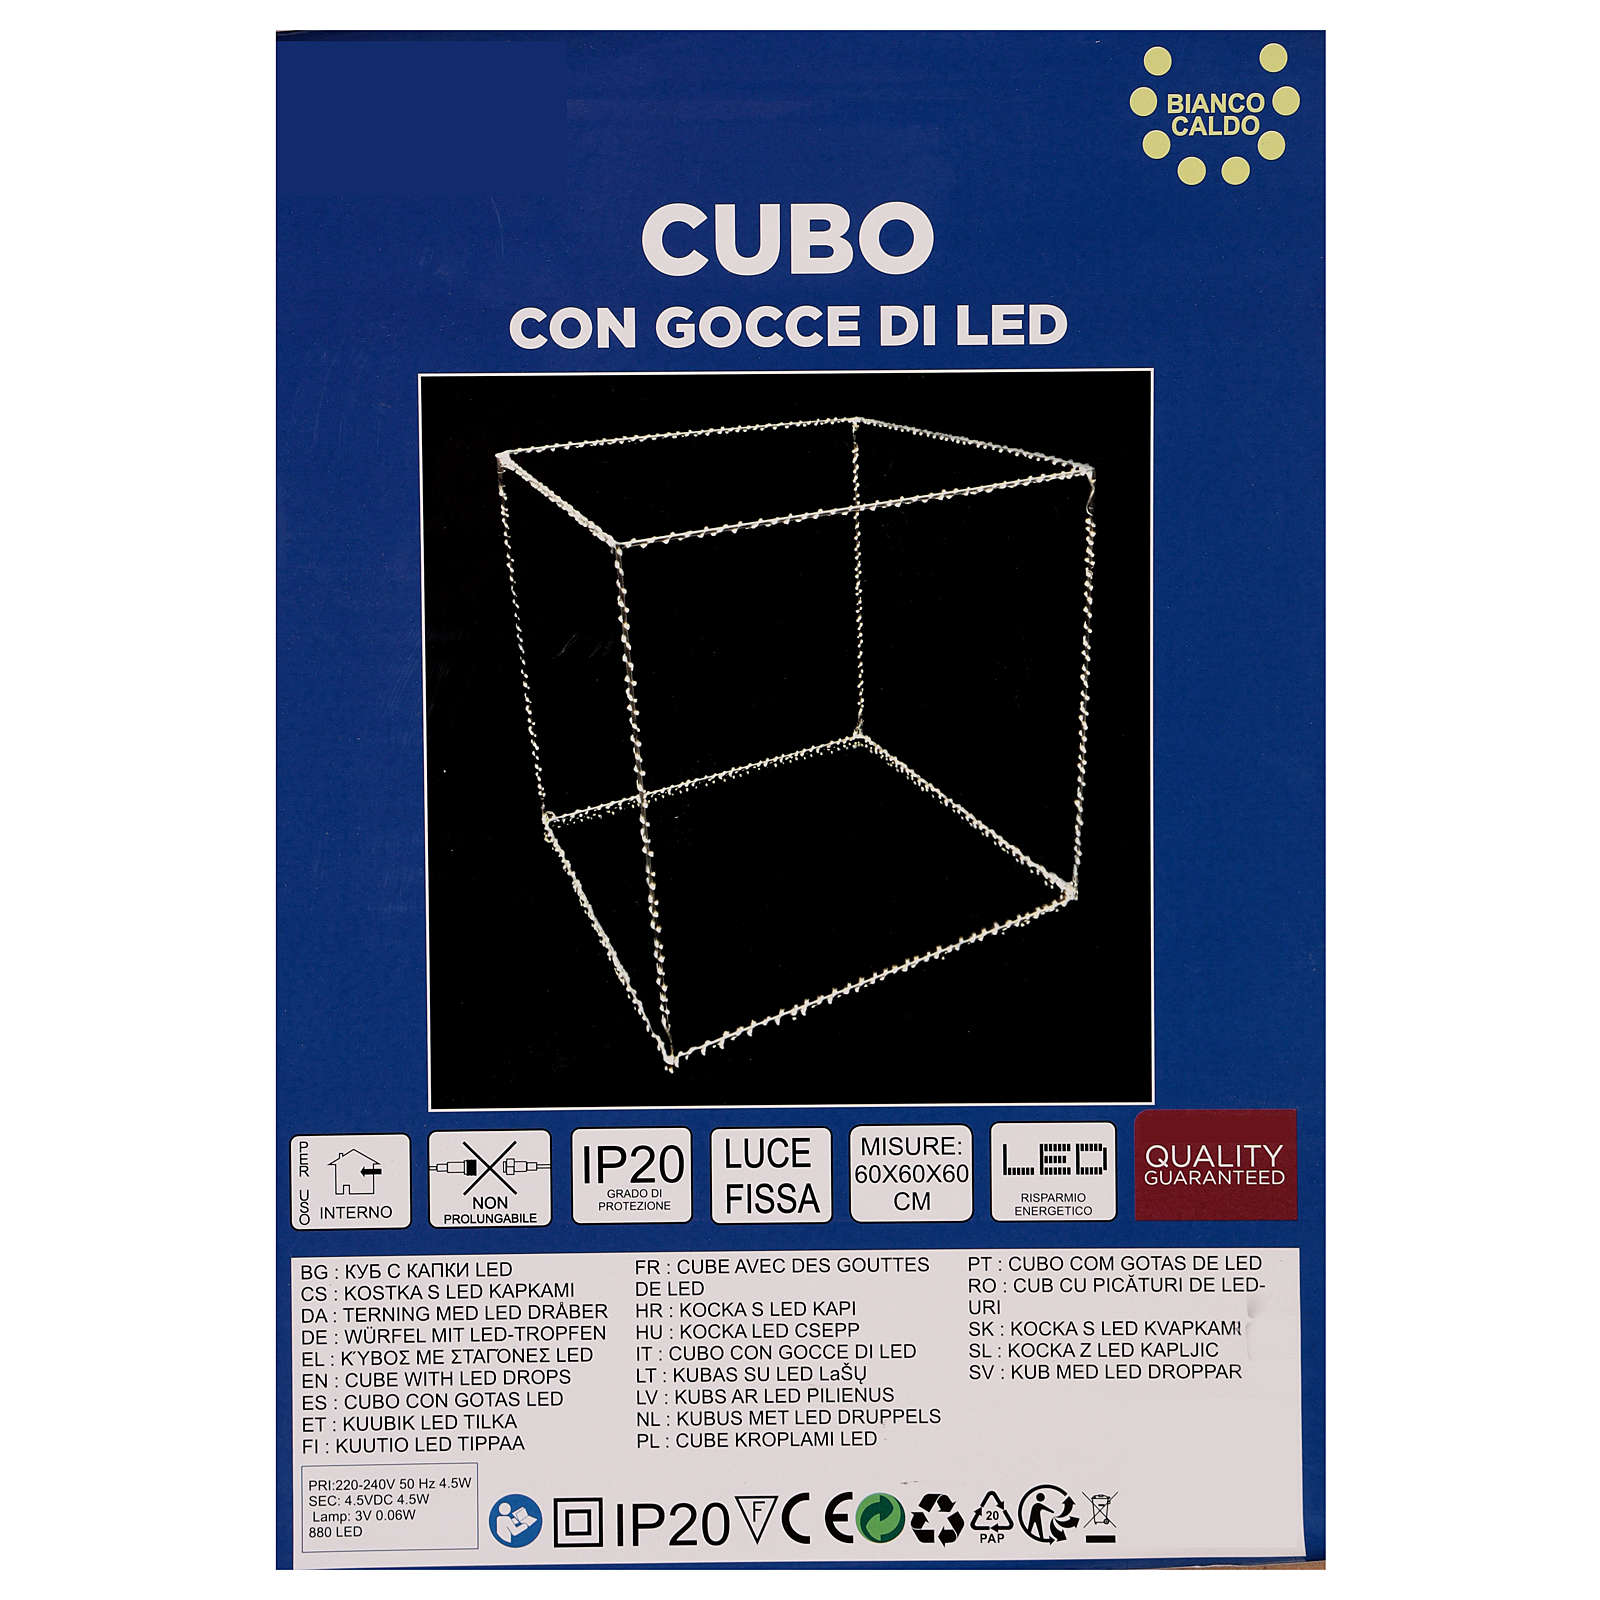 Cubo luminoso 60 cm con 880 gota led blanco cálido interior corriente 3